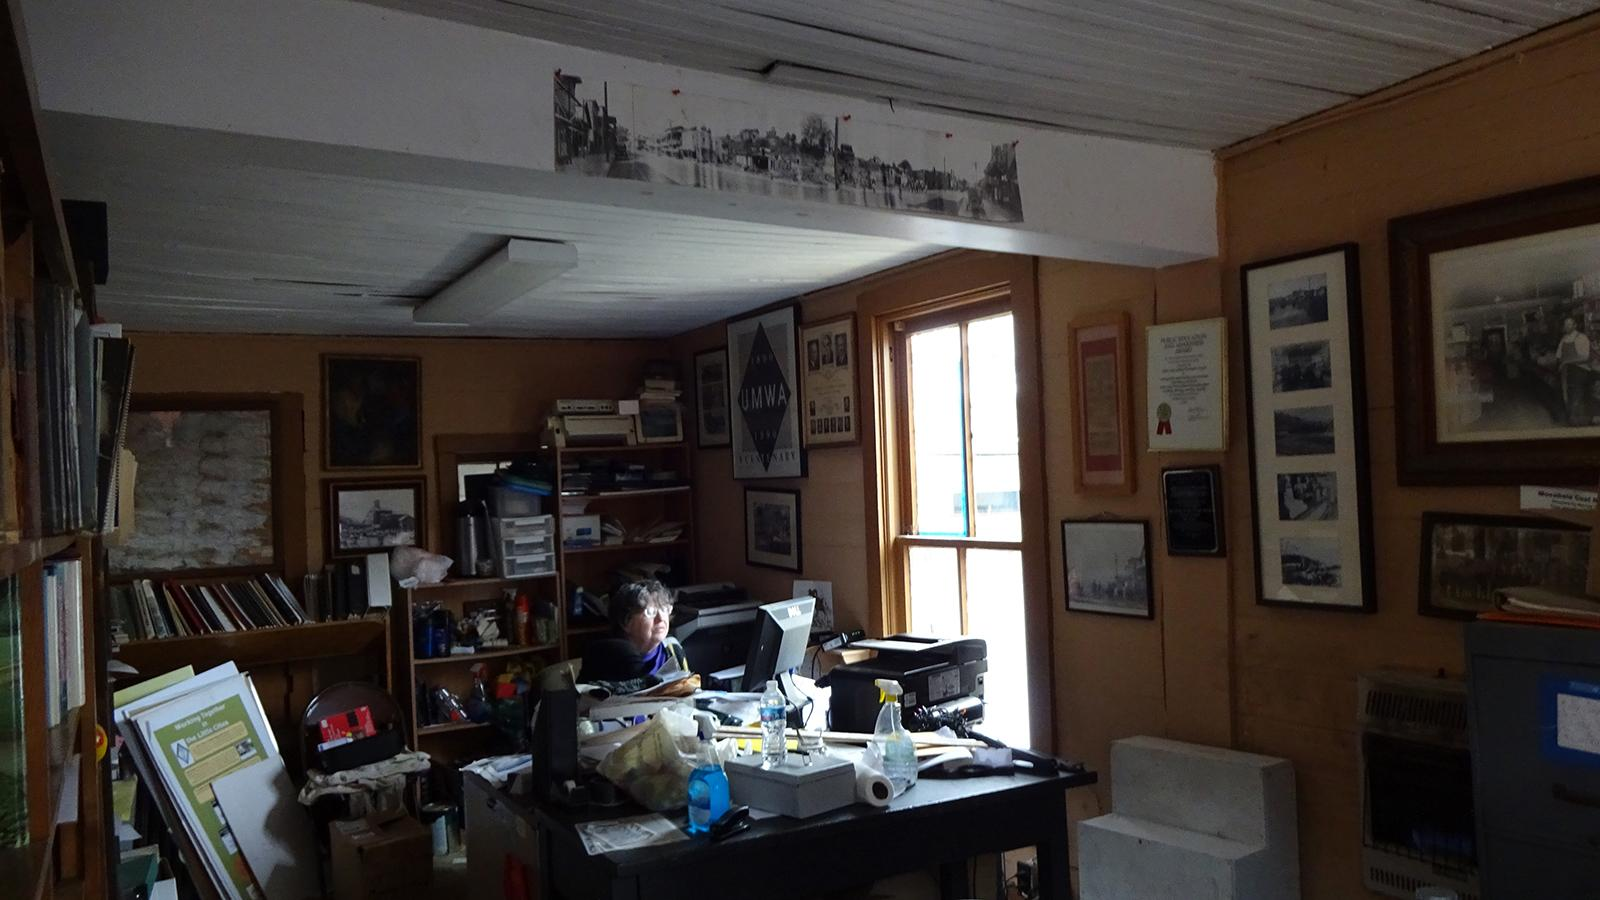 Cheryl Blosser pictured at her desk in the Little Cities of Black Diamonds Council Office